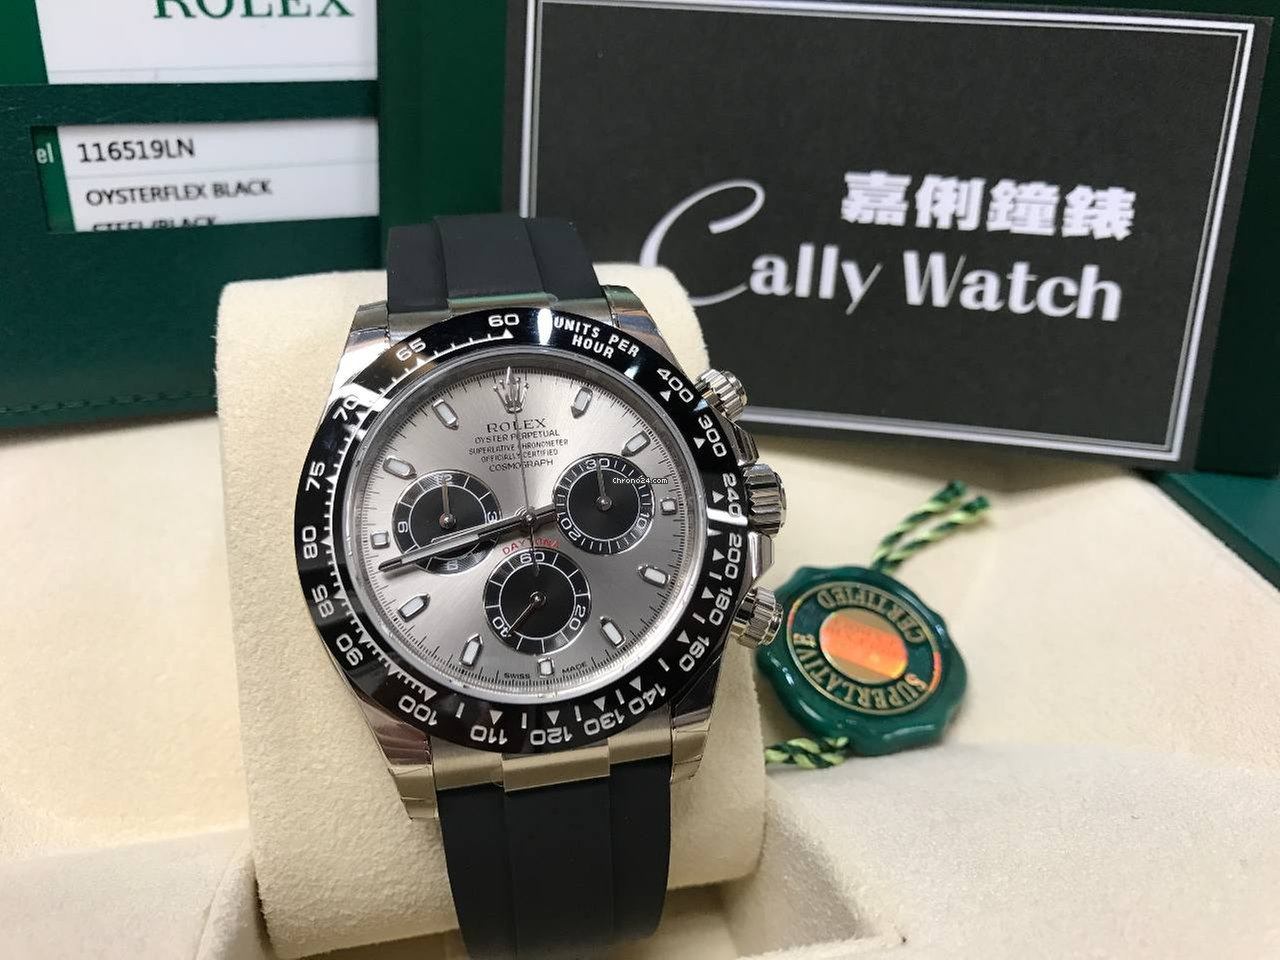 Rolex Rubber Rolex Cally New 116519ln Rubber Ceramic Daytona 2019 New